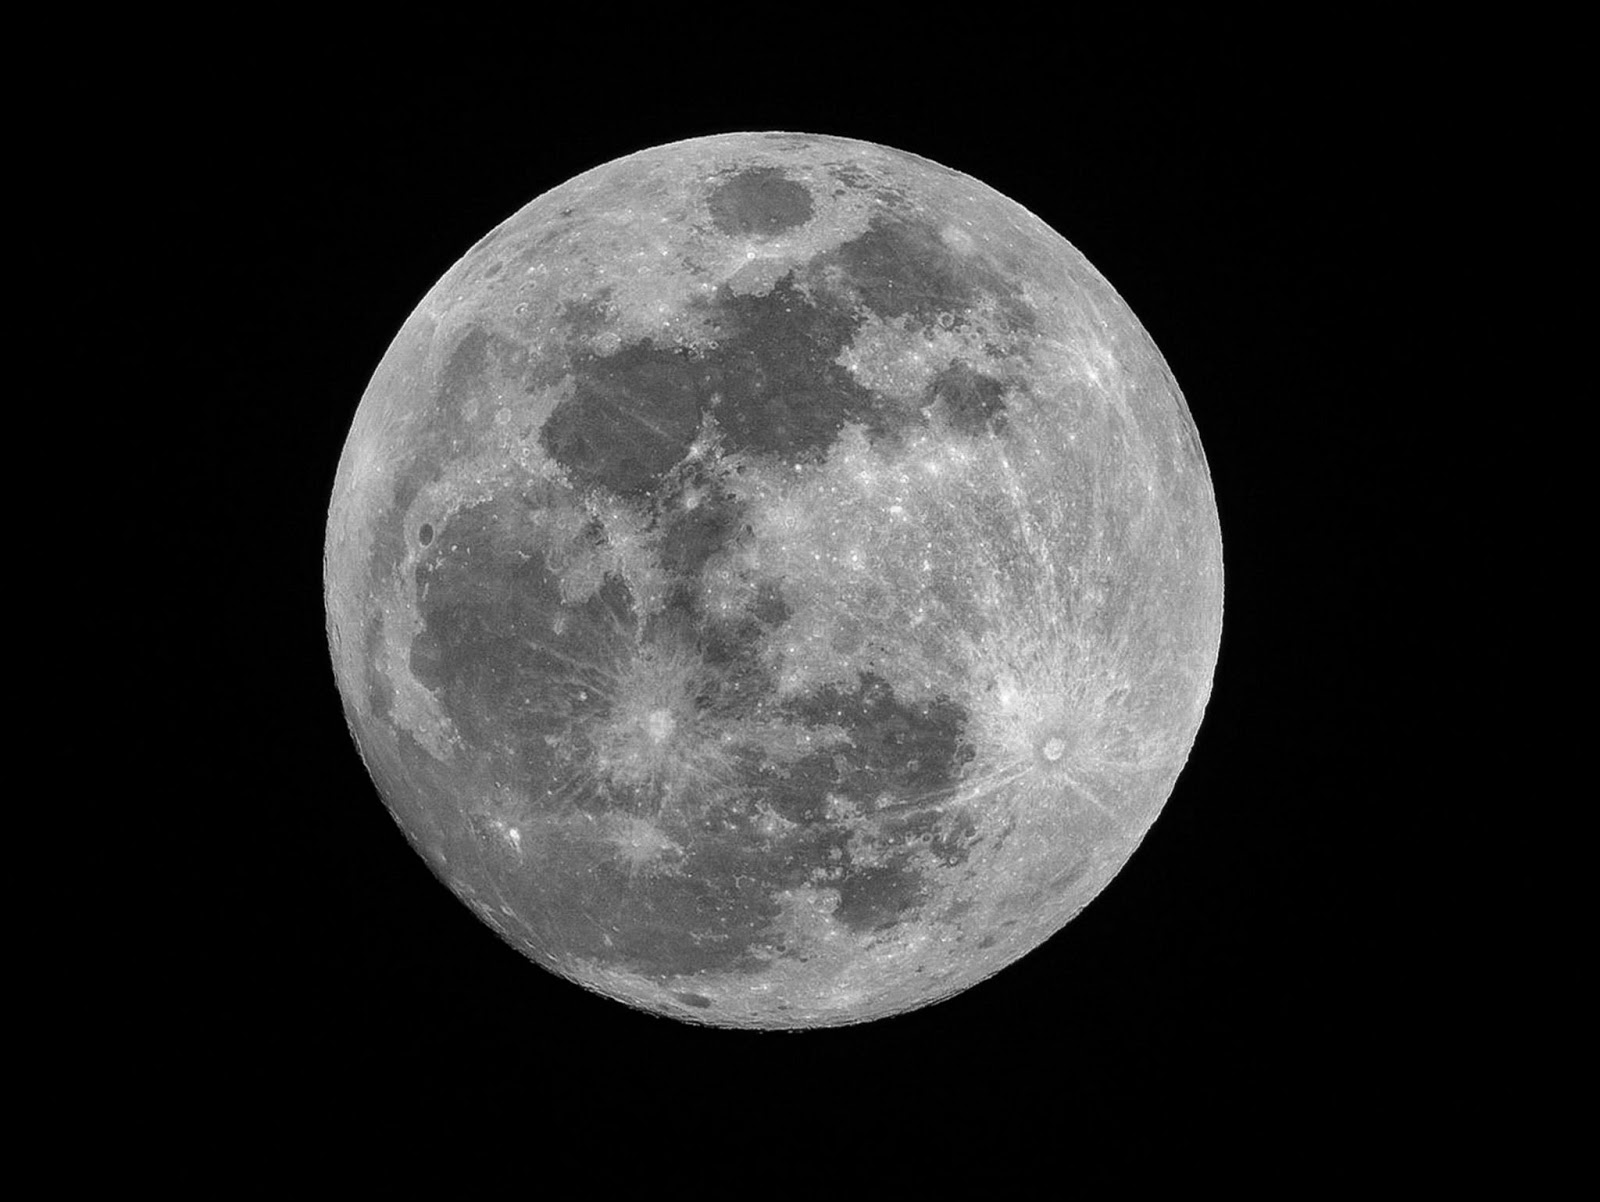 Close up photo of the moon, but with a pitch black background